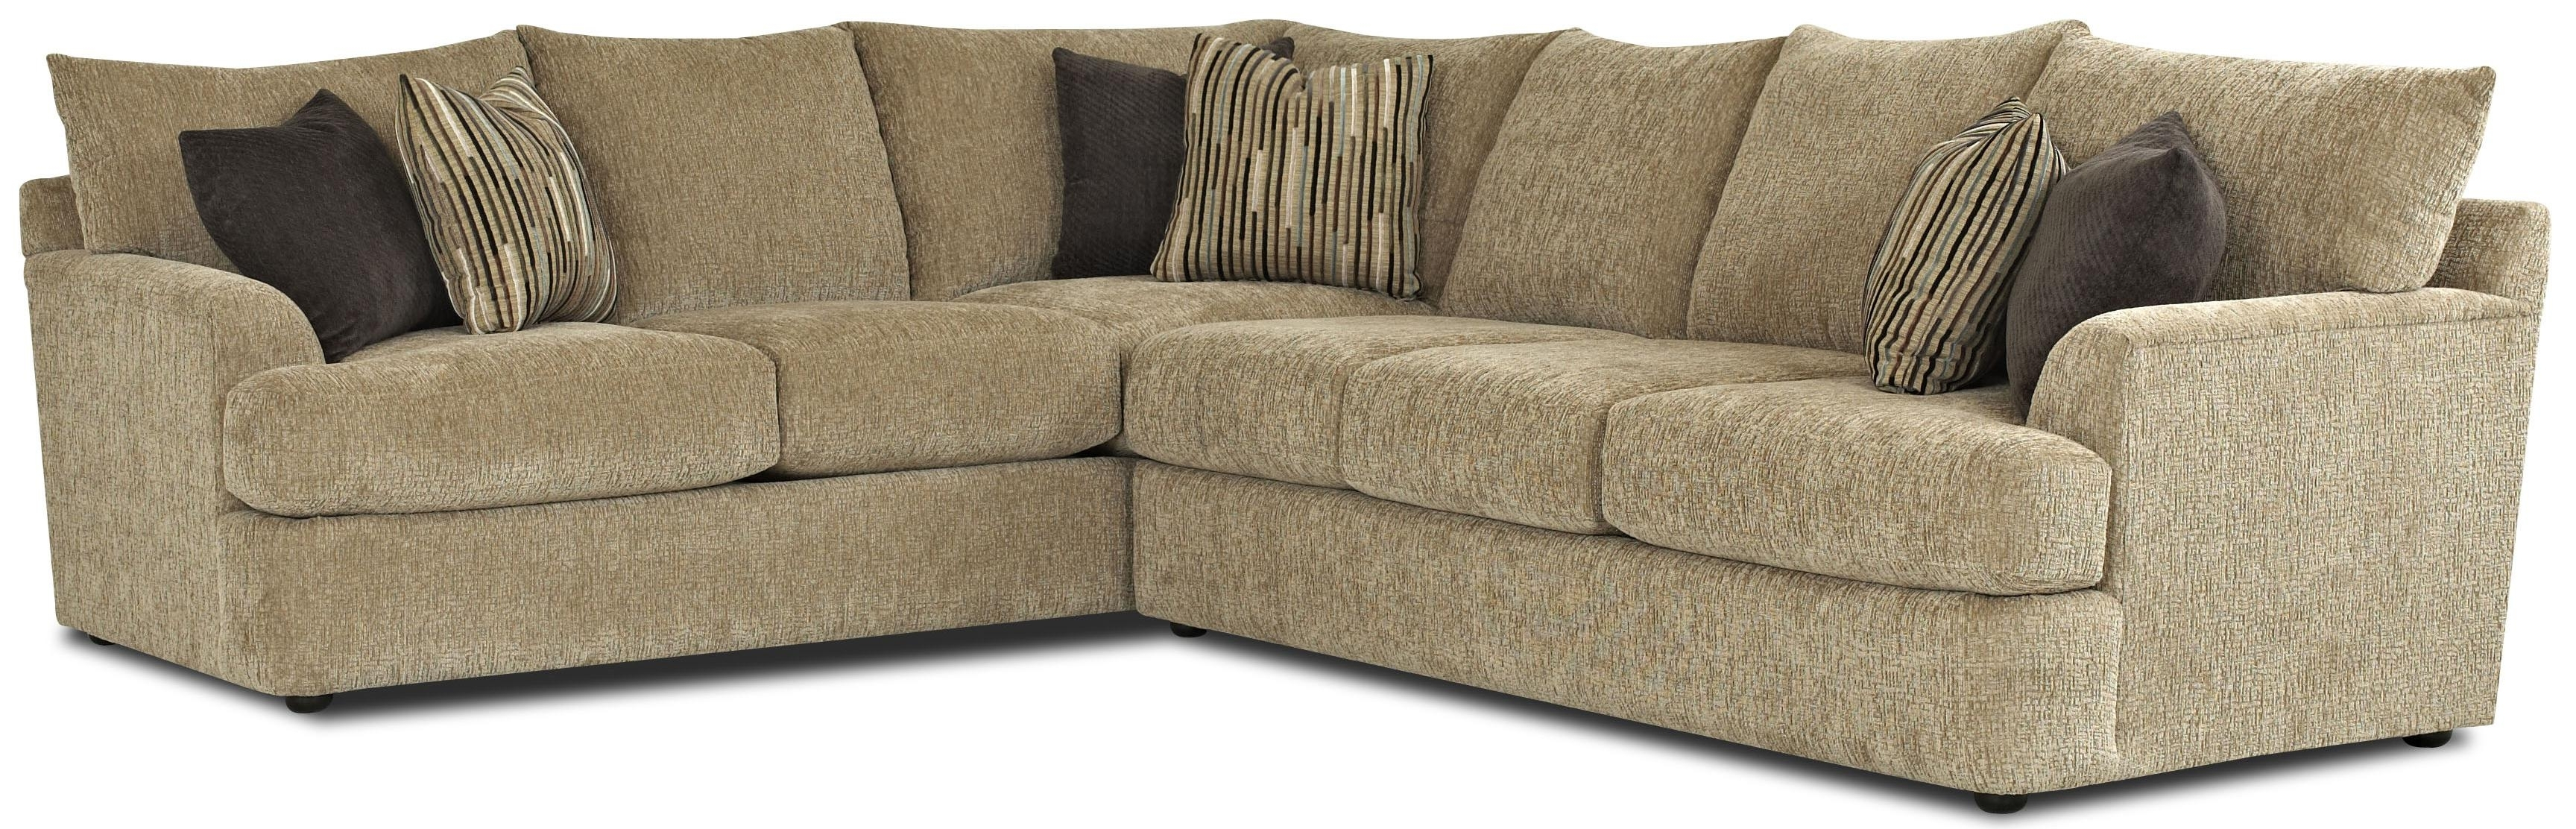 Contemporary L-Shaped Sectional Sofaklaussner | Wolf And pertaining to L Shaped Sectional Sofas (Image 2 of 10)